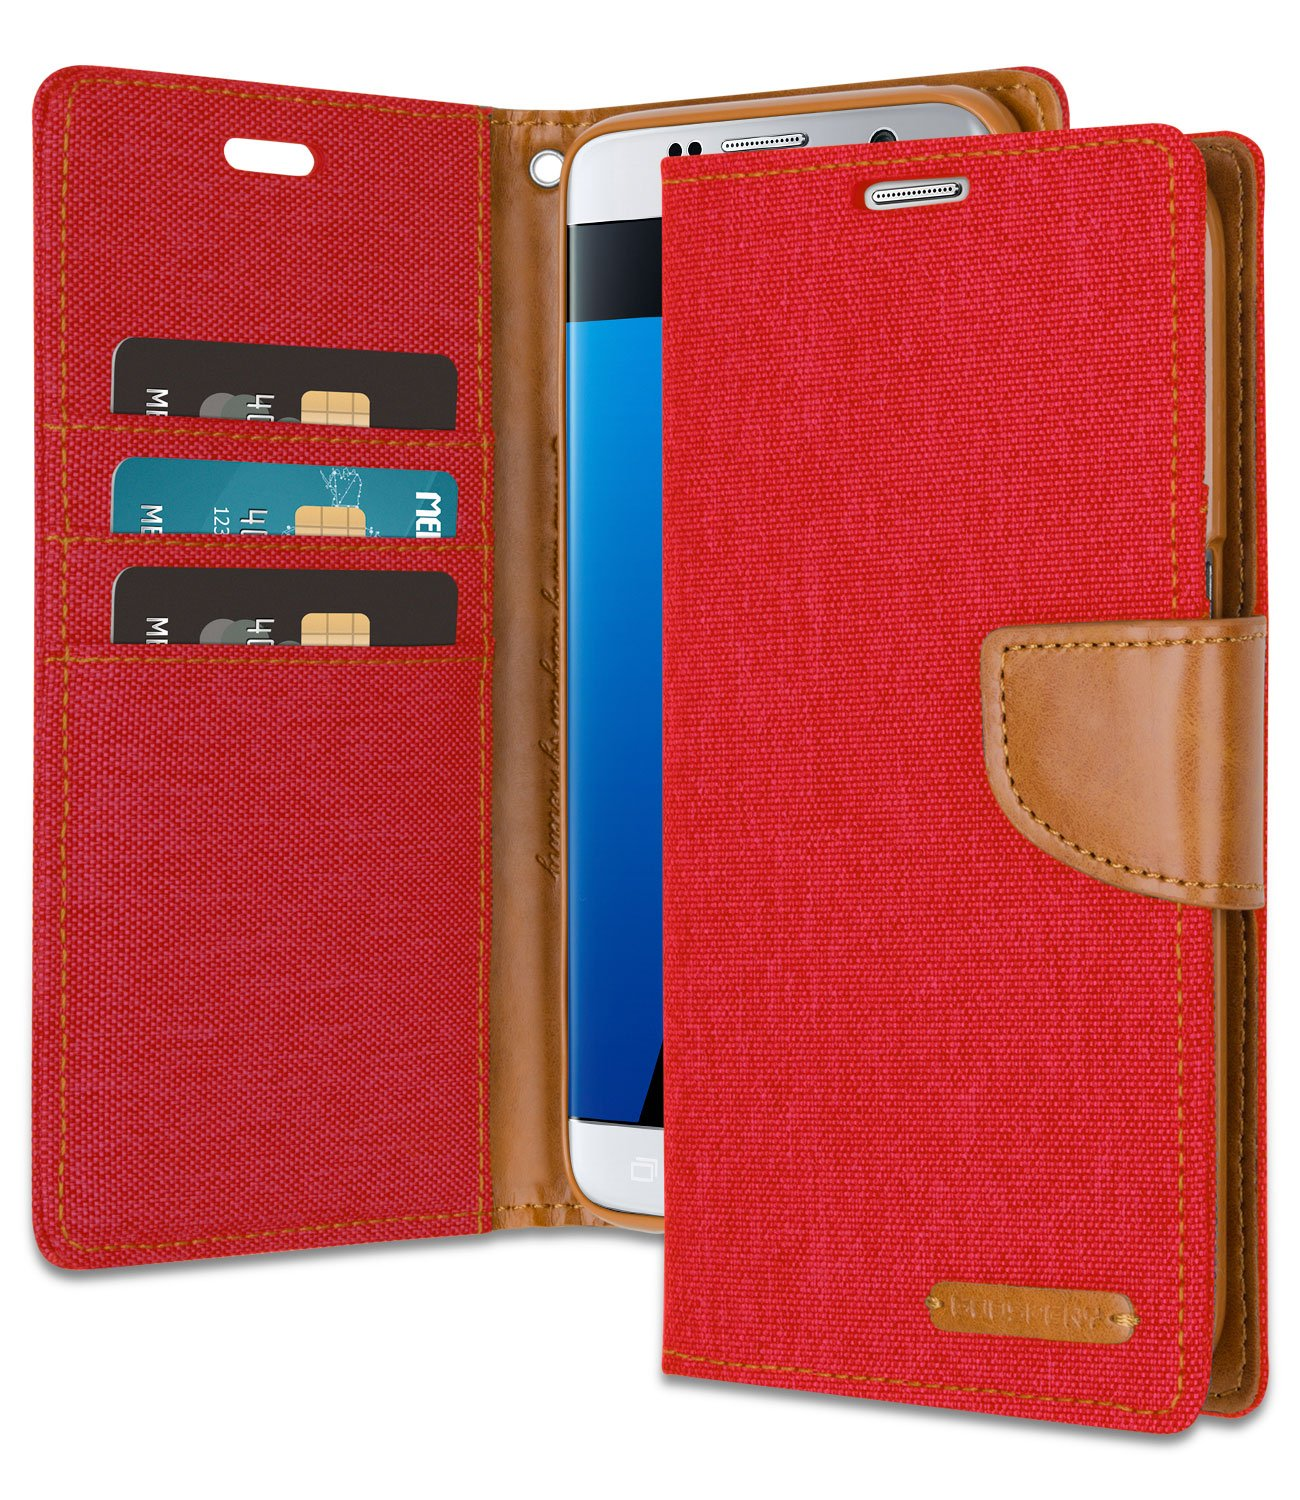 Goospery Xiaomi Note 2 Canvas Diary Case Red Galaxy S7 Edge Wallet With Free 4 Gifts Shockproof Vermagnetic Denim Material Card Holder Kickstand Flip